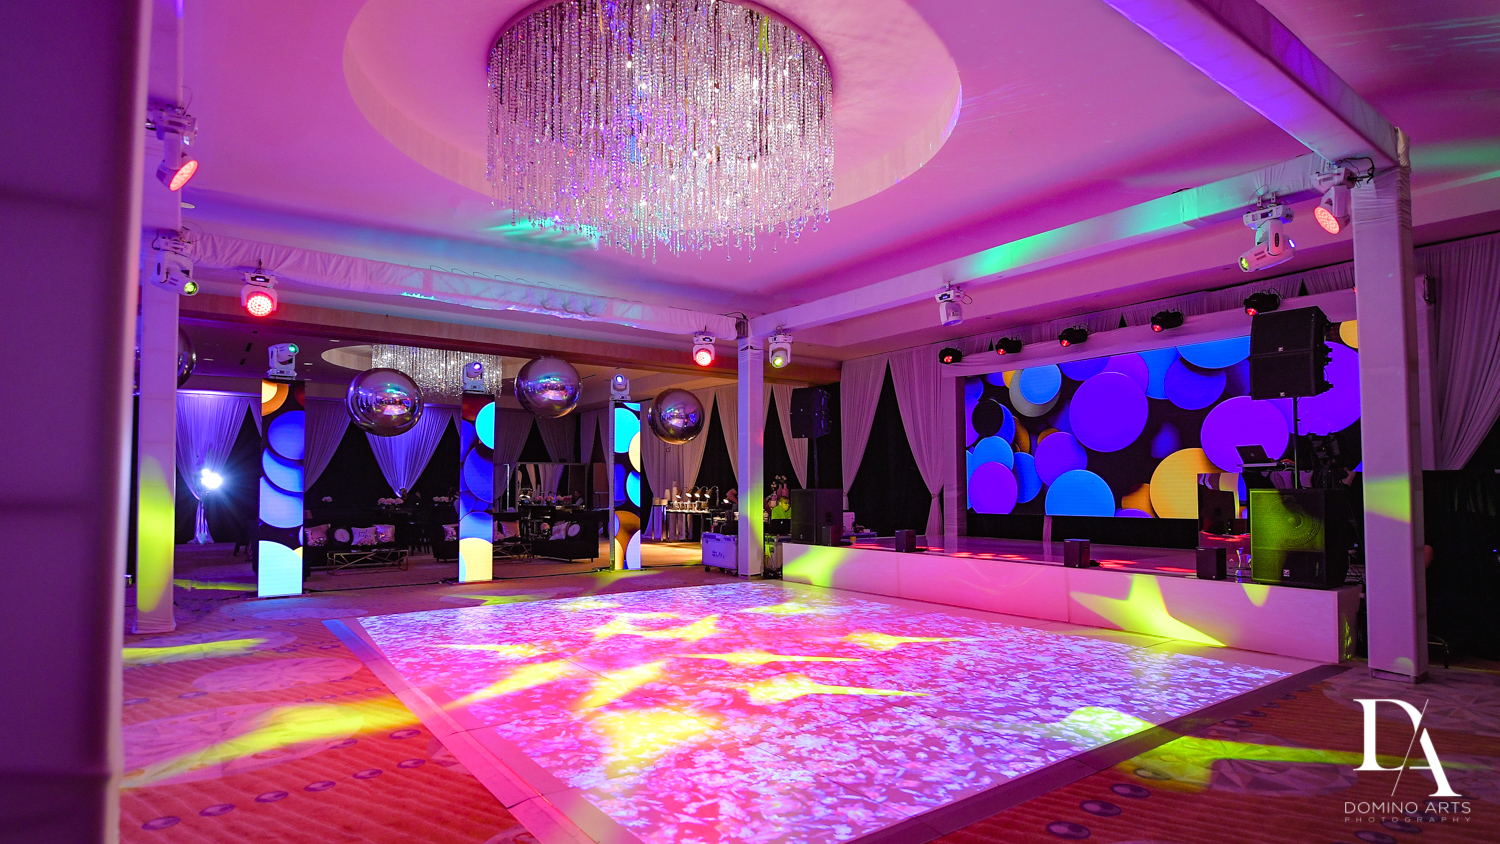 colorful decor at Masquerade Ball Bat Mitzvah at Ritz Carlton Fort Lauderdale by Domino Arts Photography